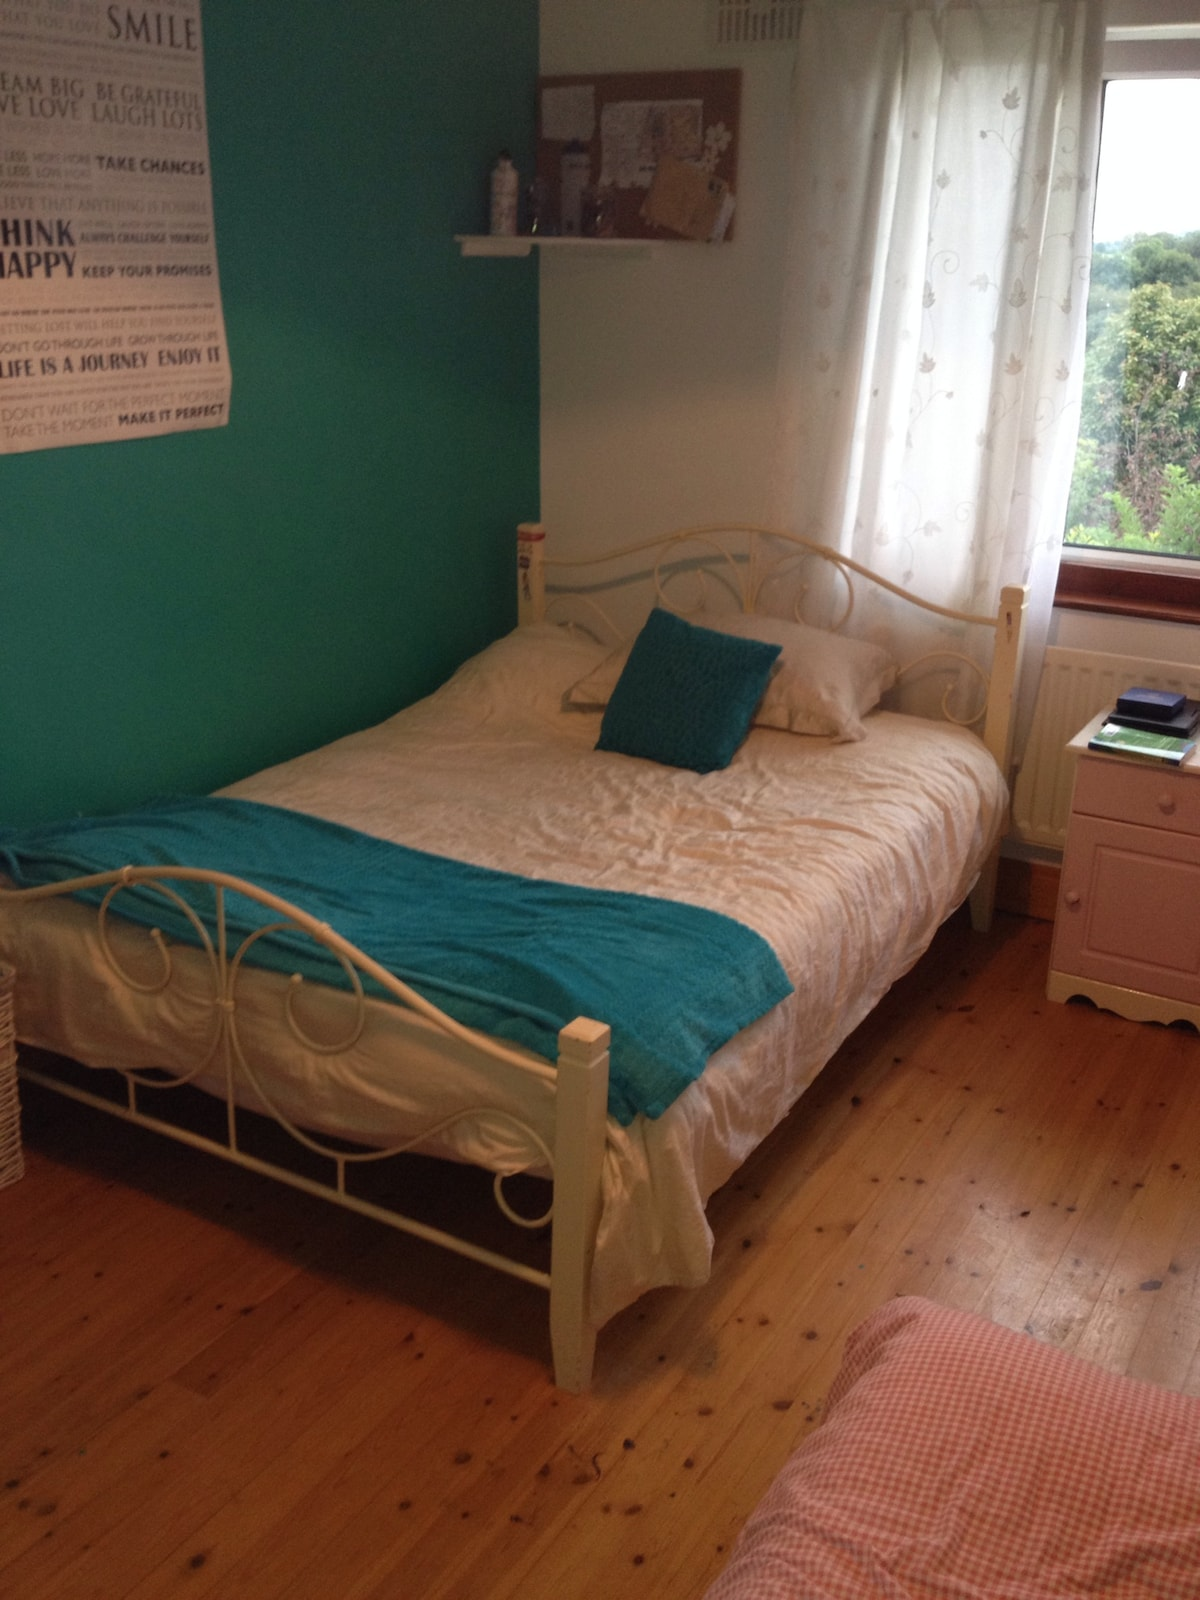 Other available bedroom